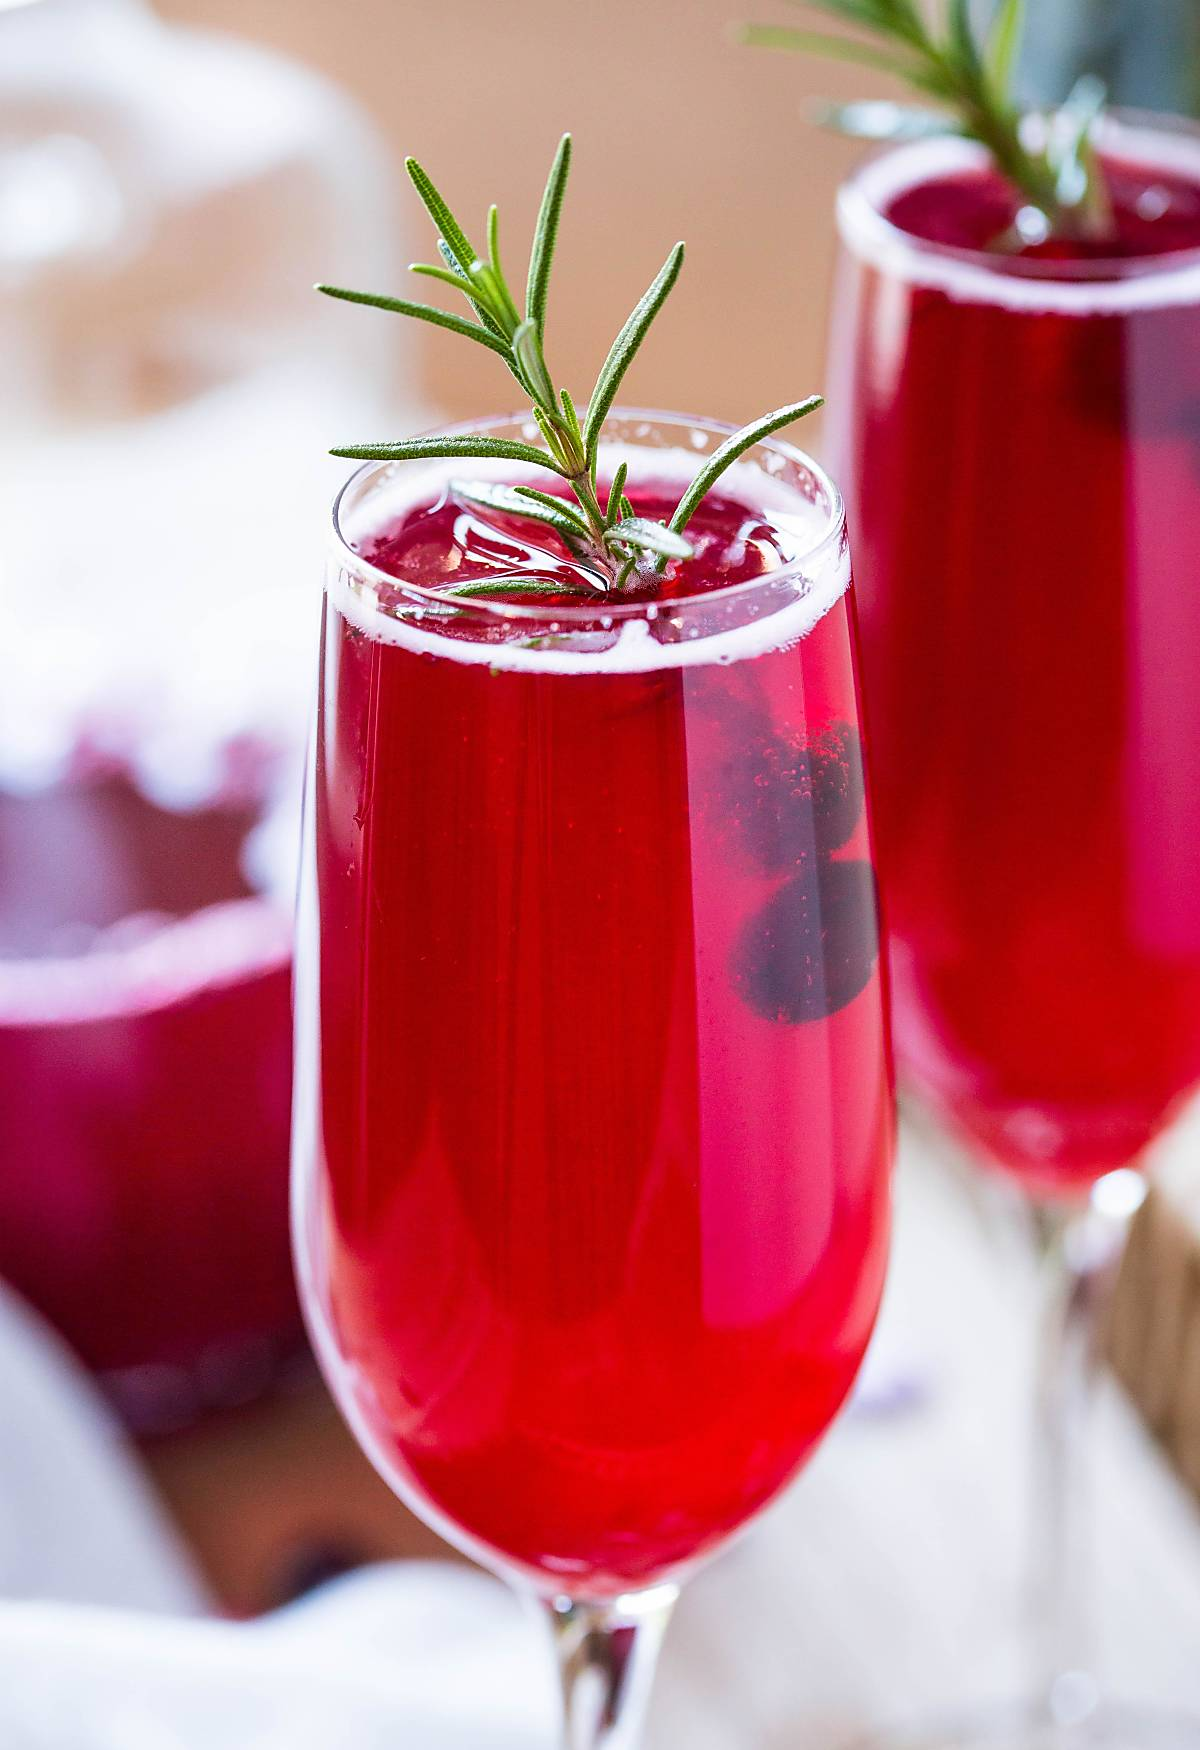 Cranberry Mimosa Recipe - Only two-ingredient mimosa prepared using fresh cranberry juice. Healthy & non-alcoholic. | #nonalcoholic #cranberry #mimosa #thanksgivingdrinks